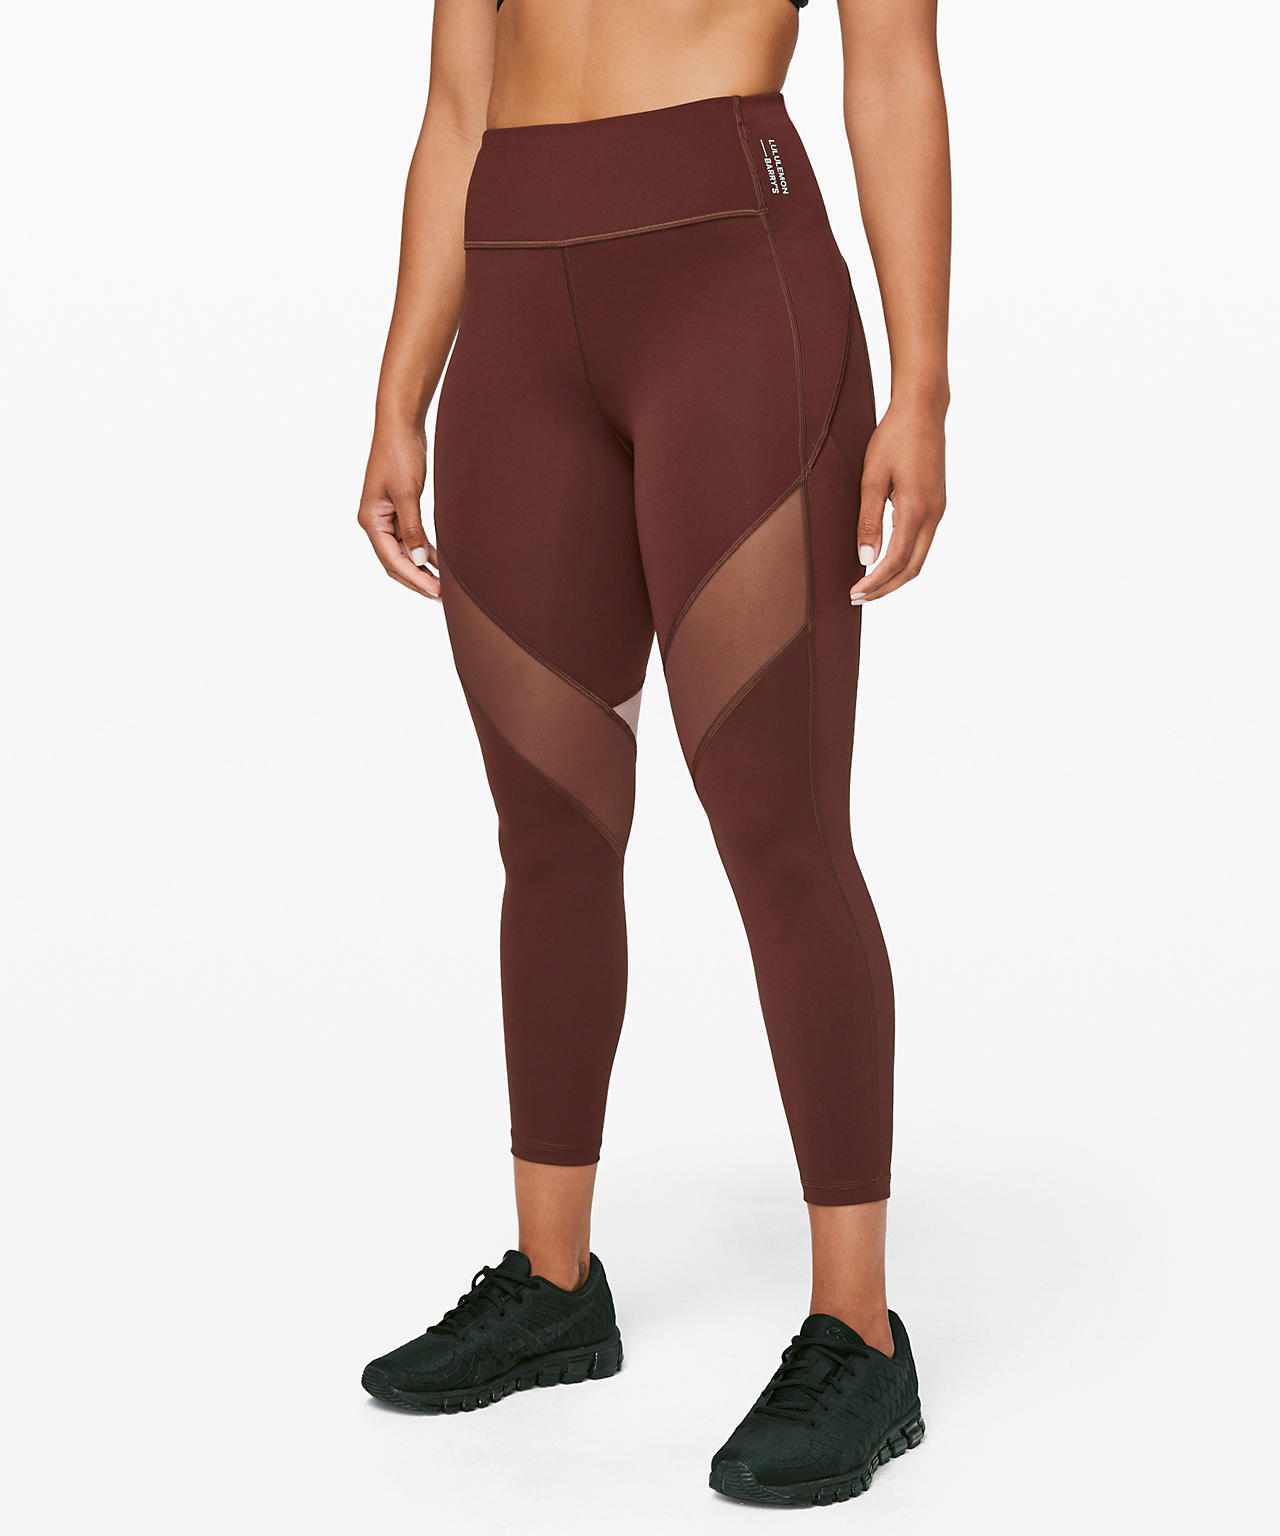 "Stronger as One Tight 25""  lululemon X Barry's"